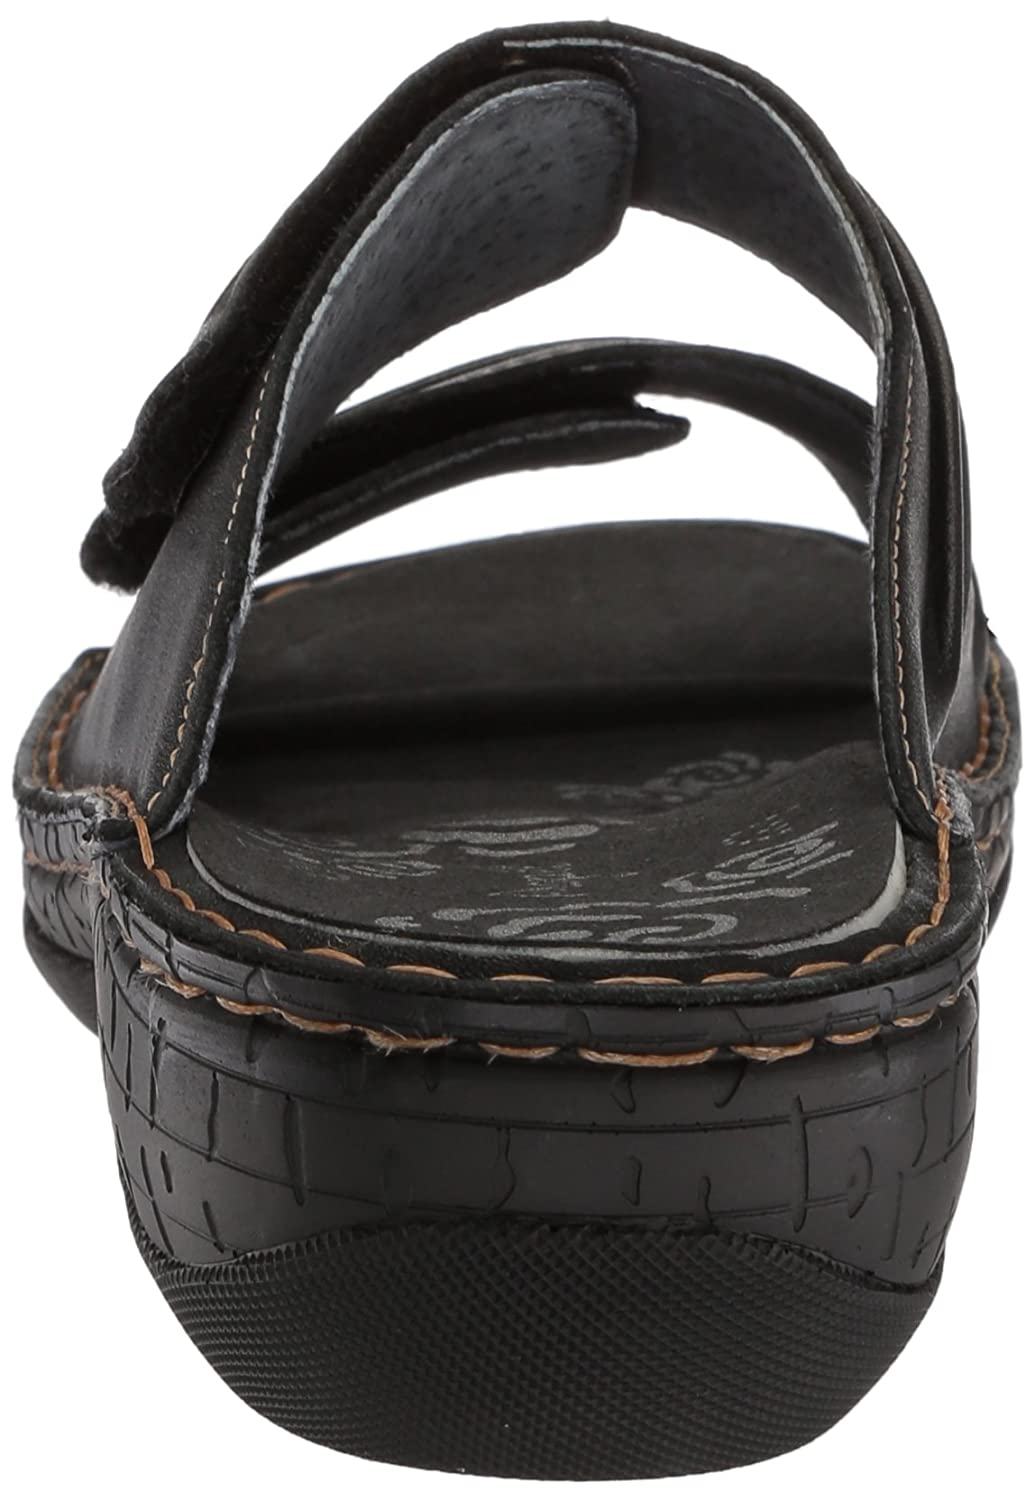 Propet Women's June Slide Sandal B072JKHK46 11 W US|Black